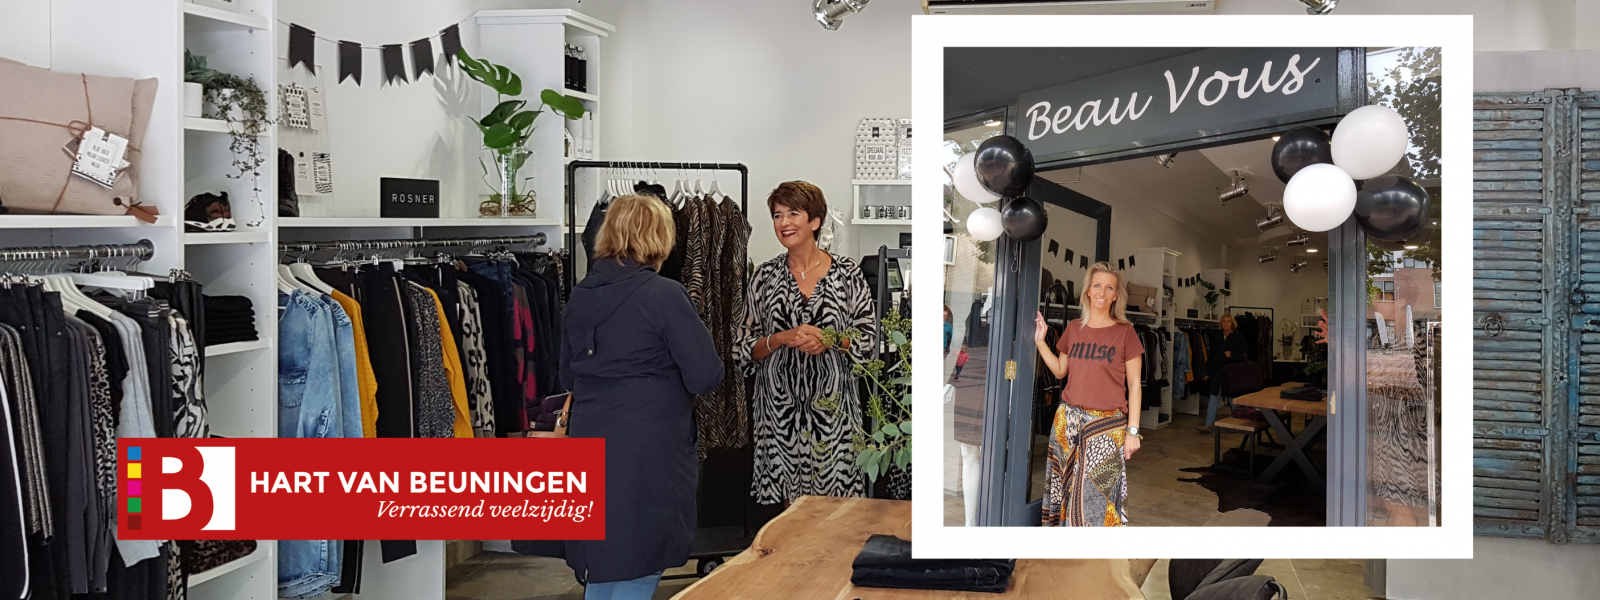 Beau Vous is geopend!